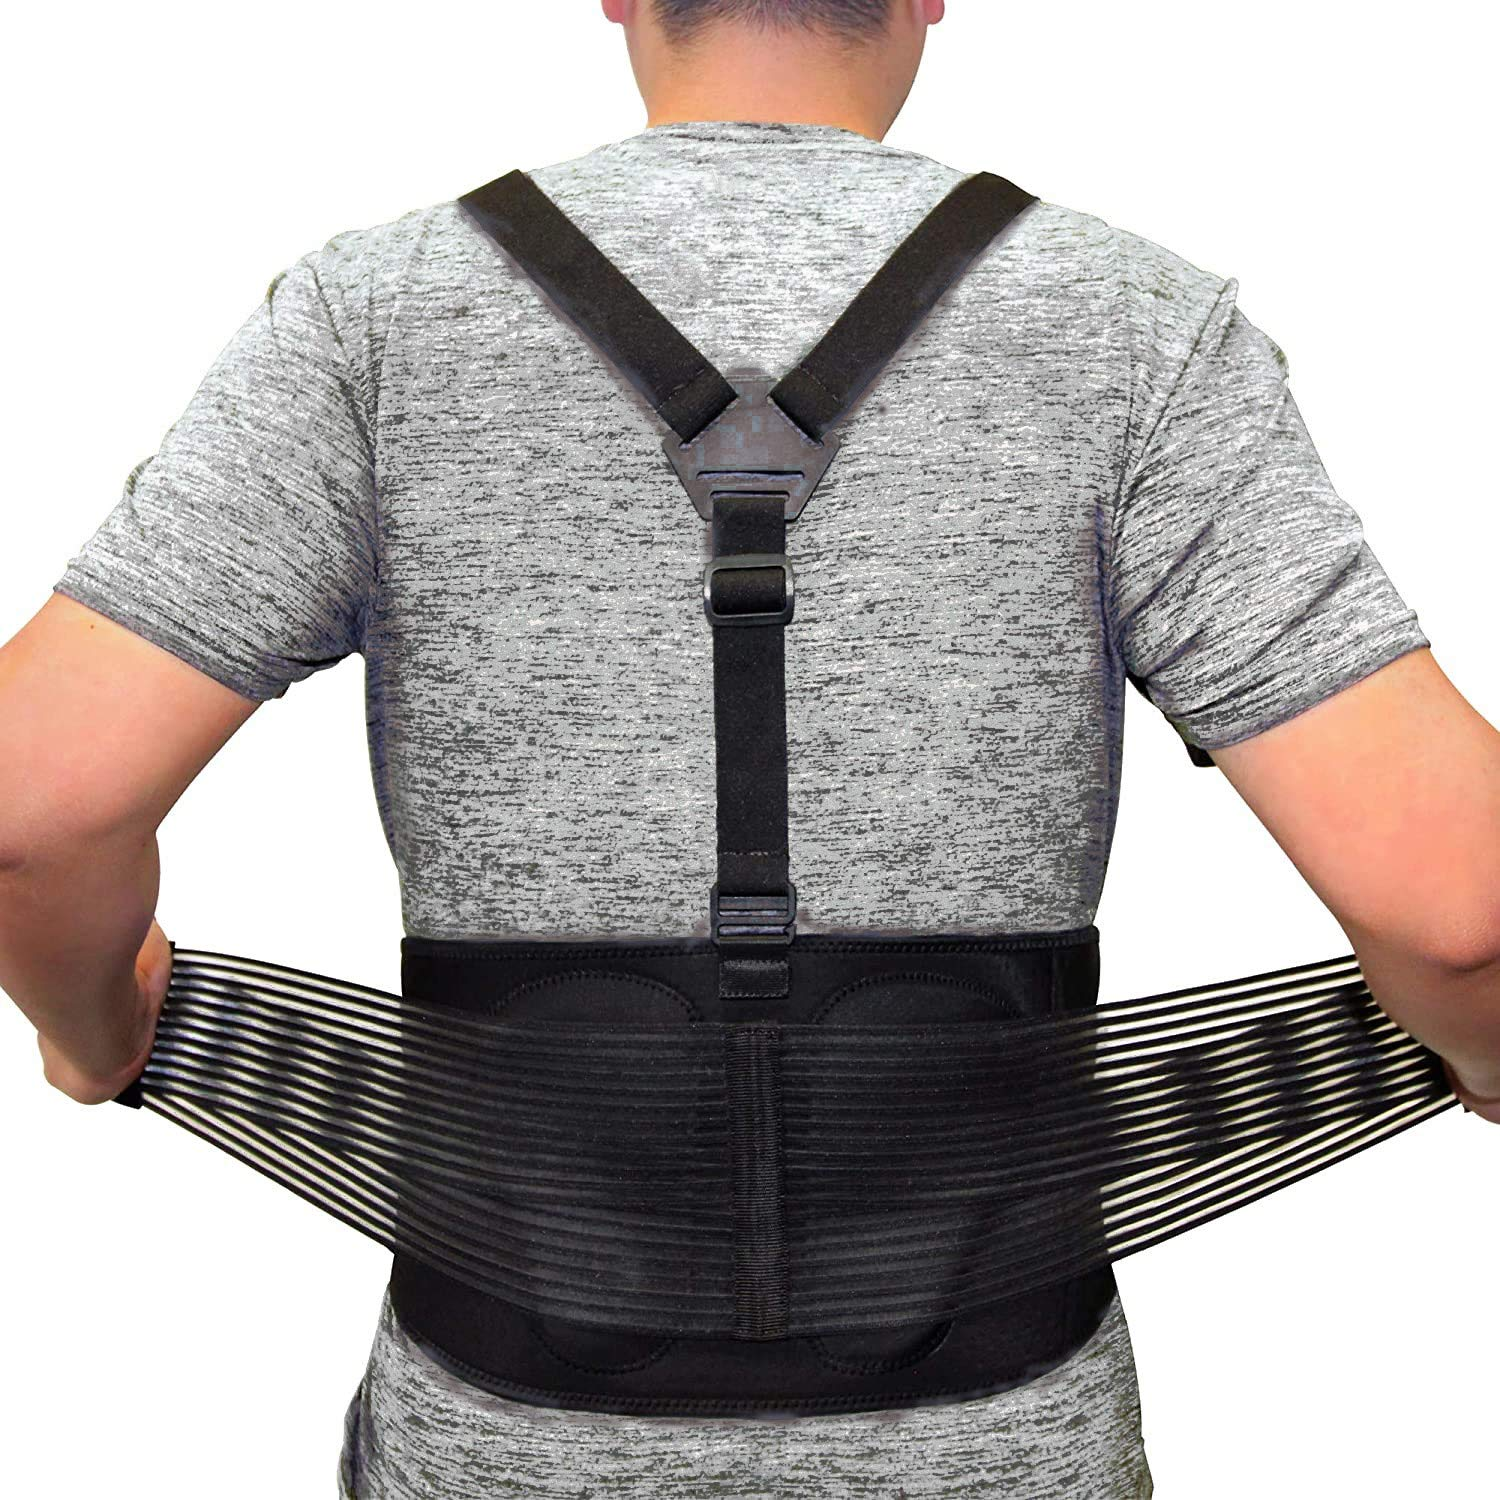 Max Finally popular brand 65% OFF Back Brace For Lifting Work With Safety Belt Suspenders Y-shape